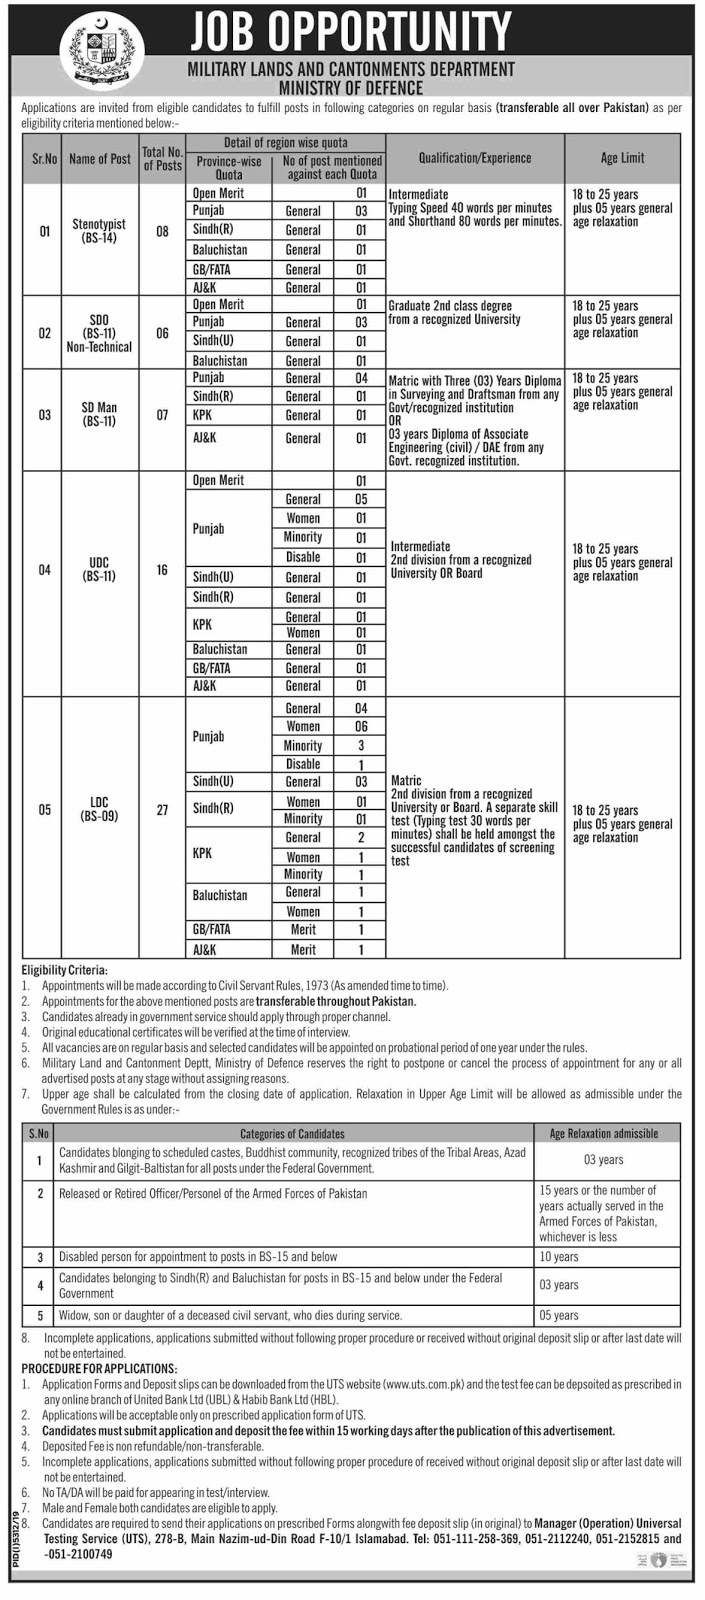 military-lands-cantonment-department-jobs